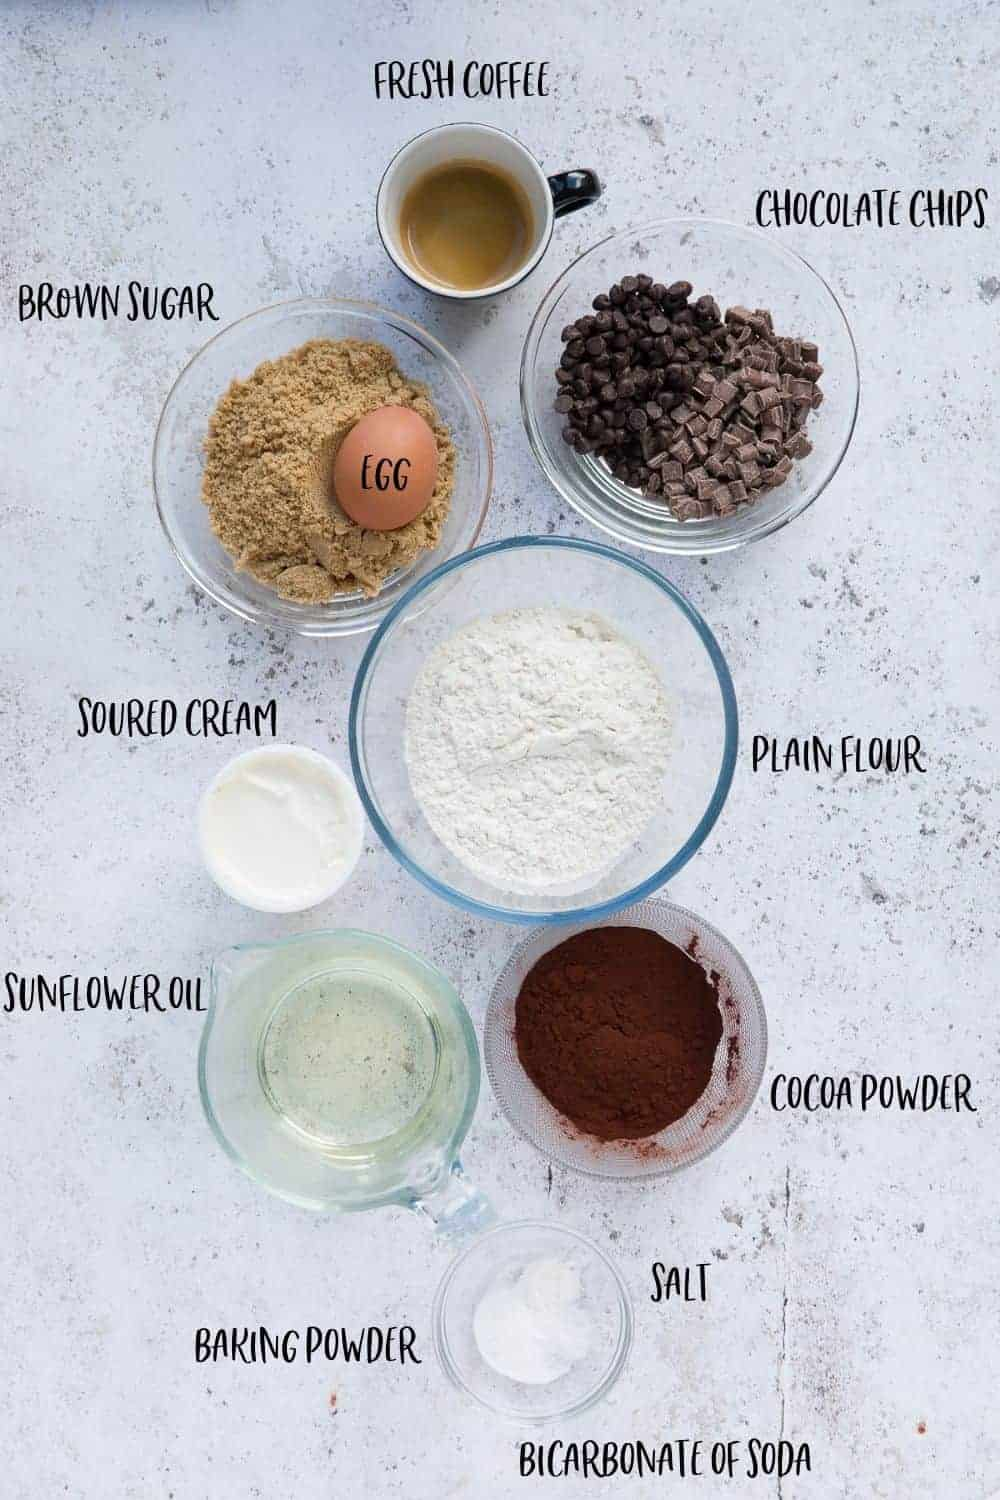 An image showing the following ingredients in glass bowls: fresh coffee, chocolate chips, brown sugar, egg, plain flour, soured cream, sunflower oil, cocoa powder, baking powder, salt and bicarbonate of soda.